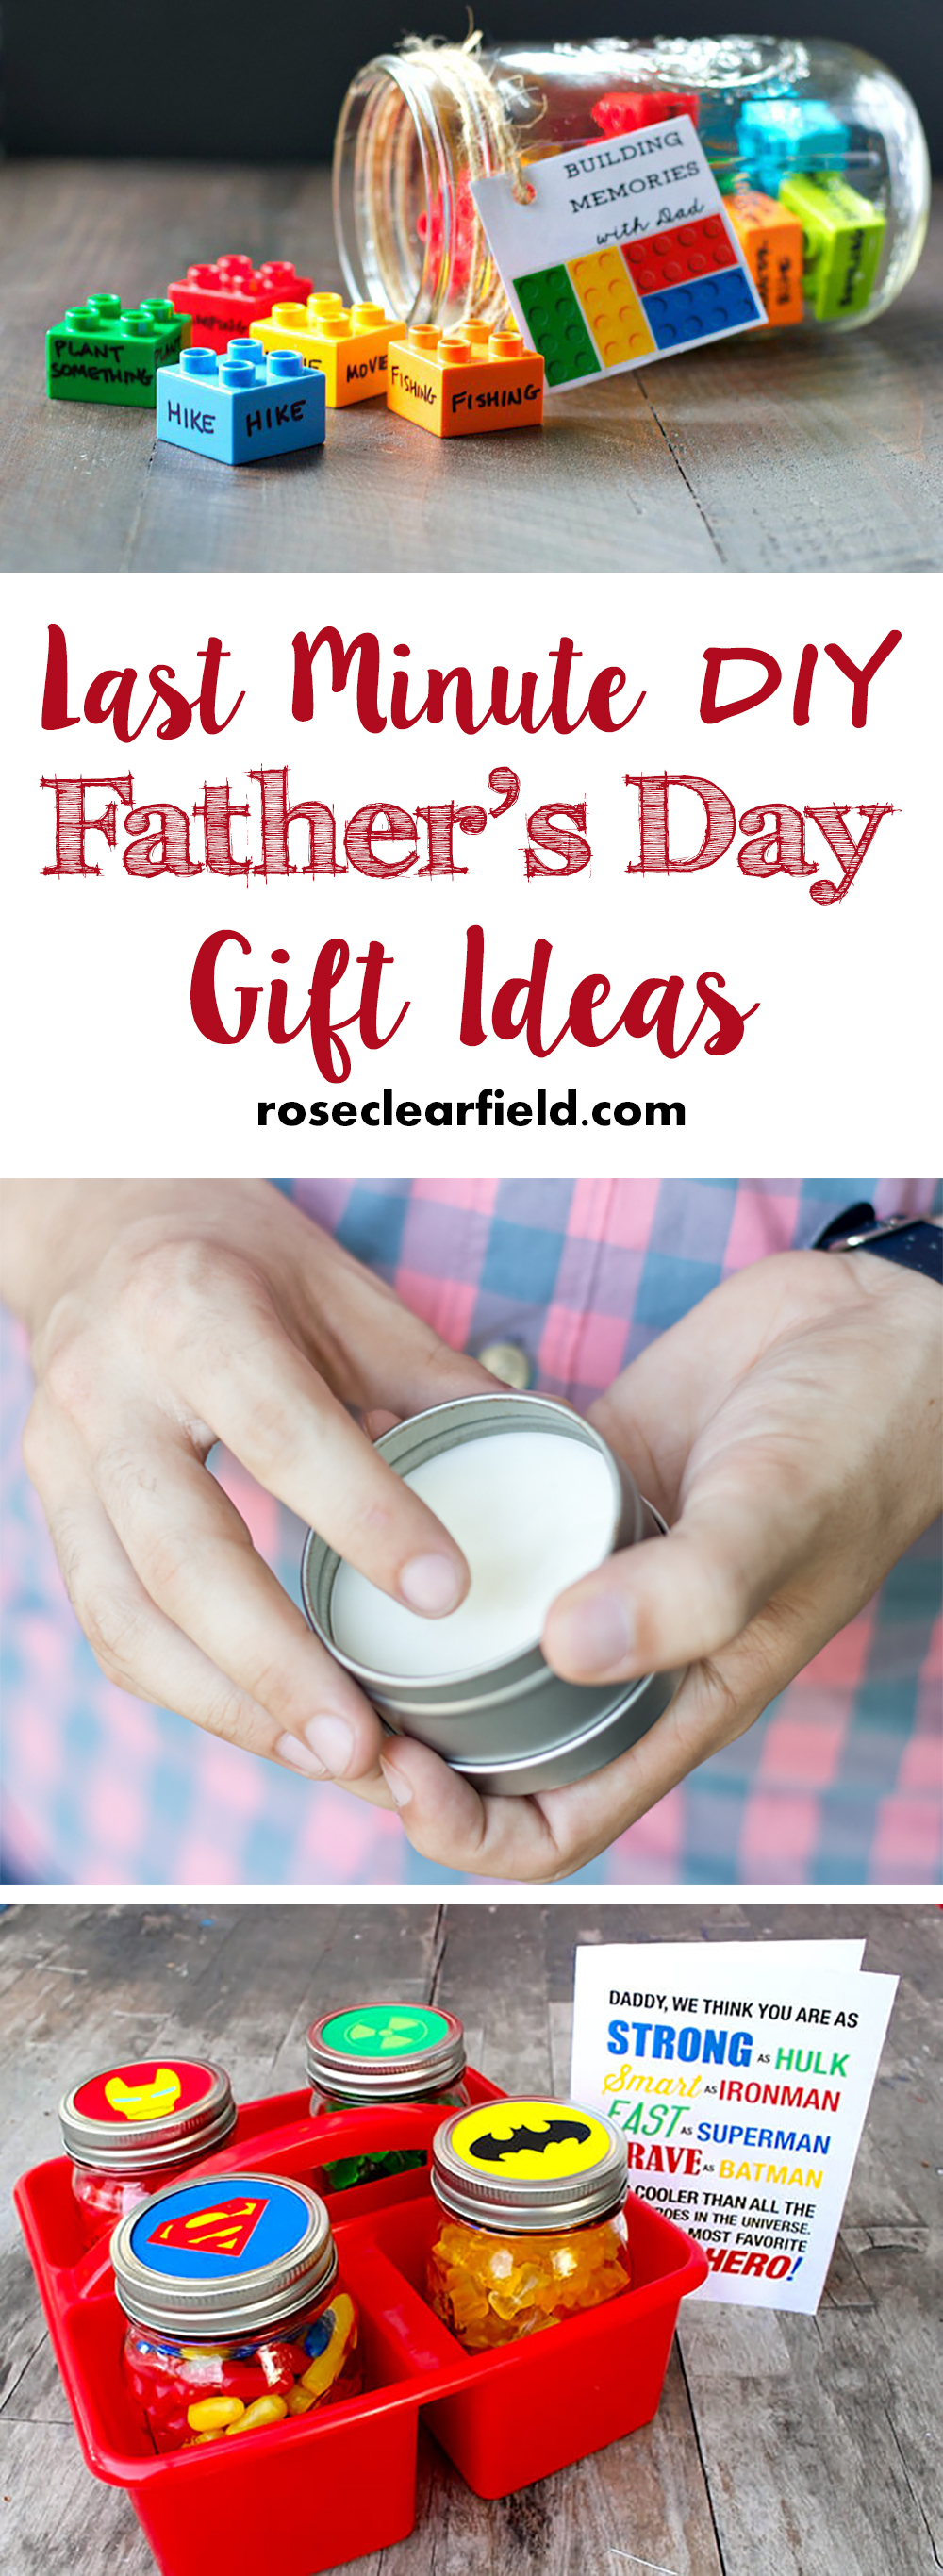 Last Minute Diy Father S Day Gift Ideas Rose Clearfield